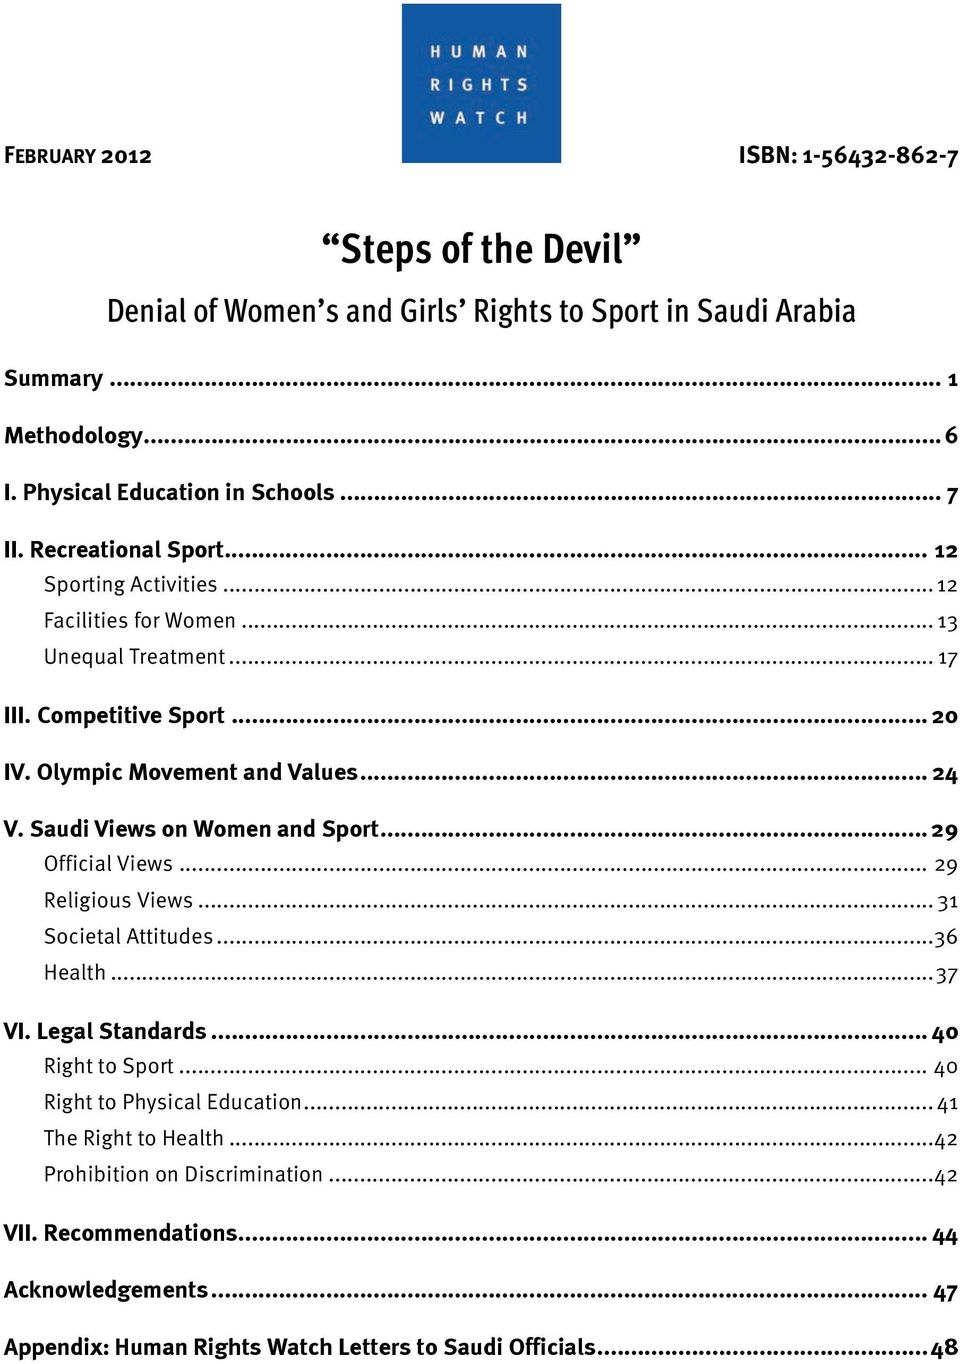 Saudi Views on Women and Sport... 29 Official Views... 29 Religious Views... 31 Societal Attitudes... 36 Health... 37 VI. Legal Standards... 40 Right to Sport.